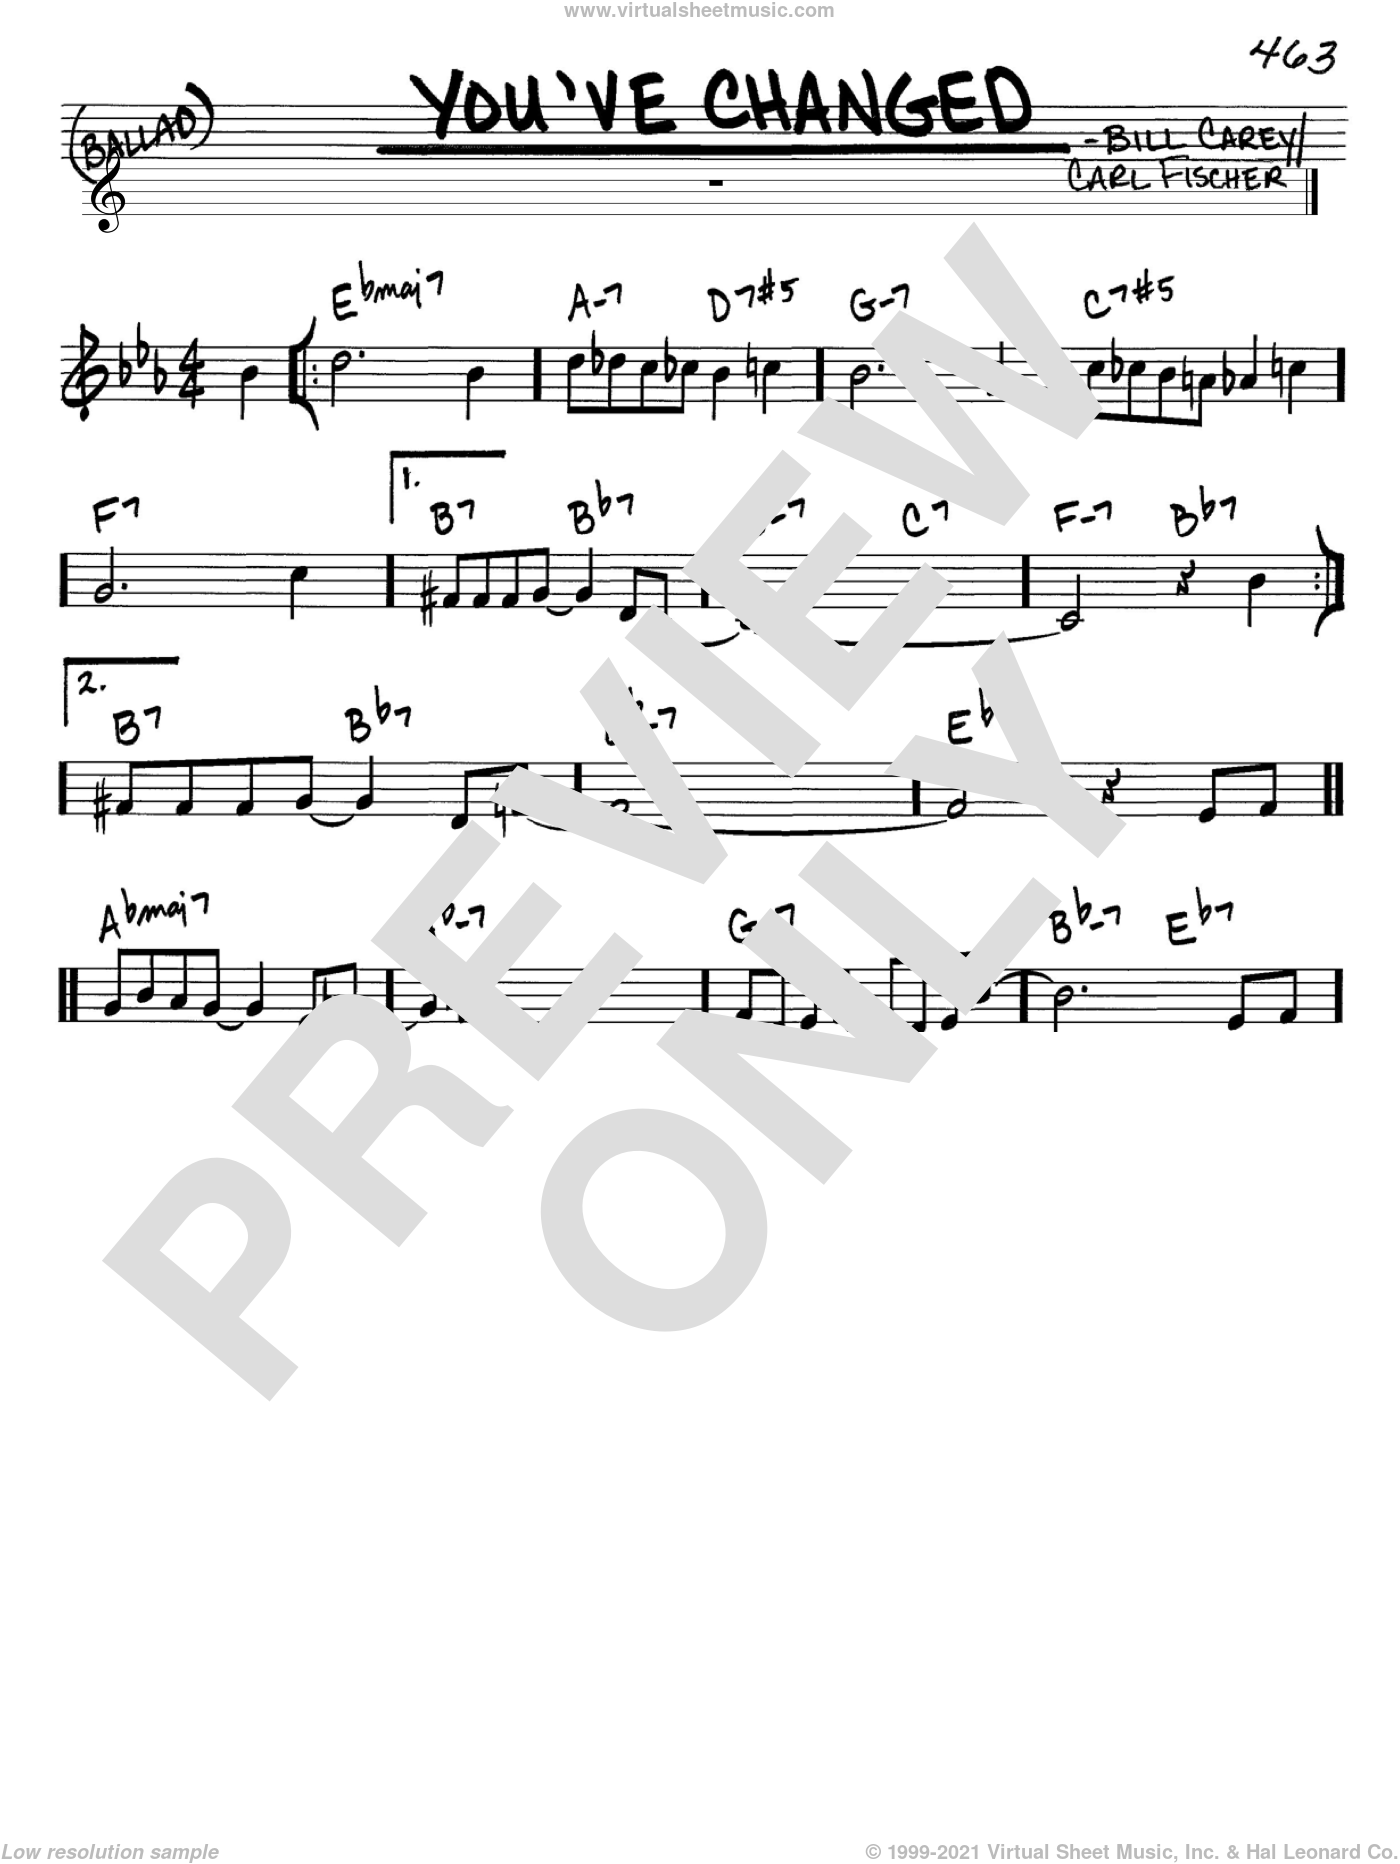 You've Changed sheet music for voice and other instruments (C) by Bill Carey